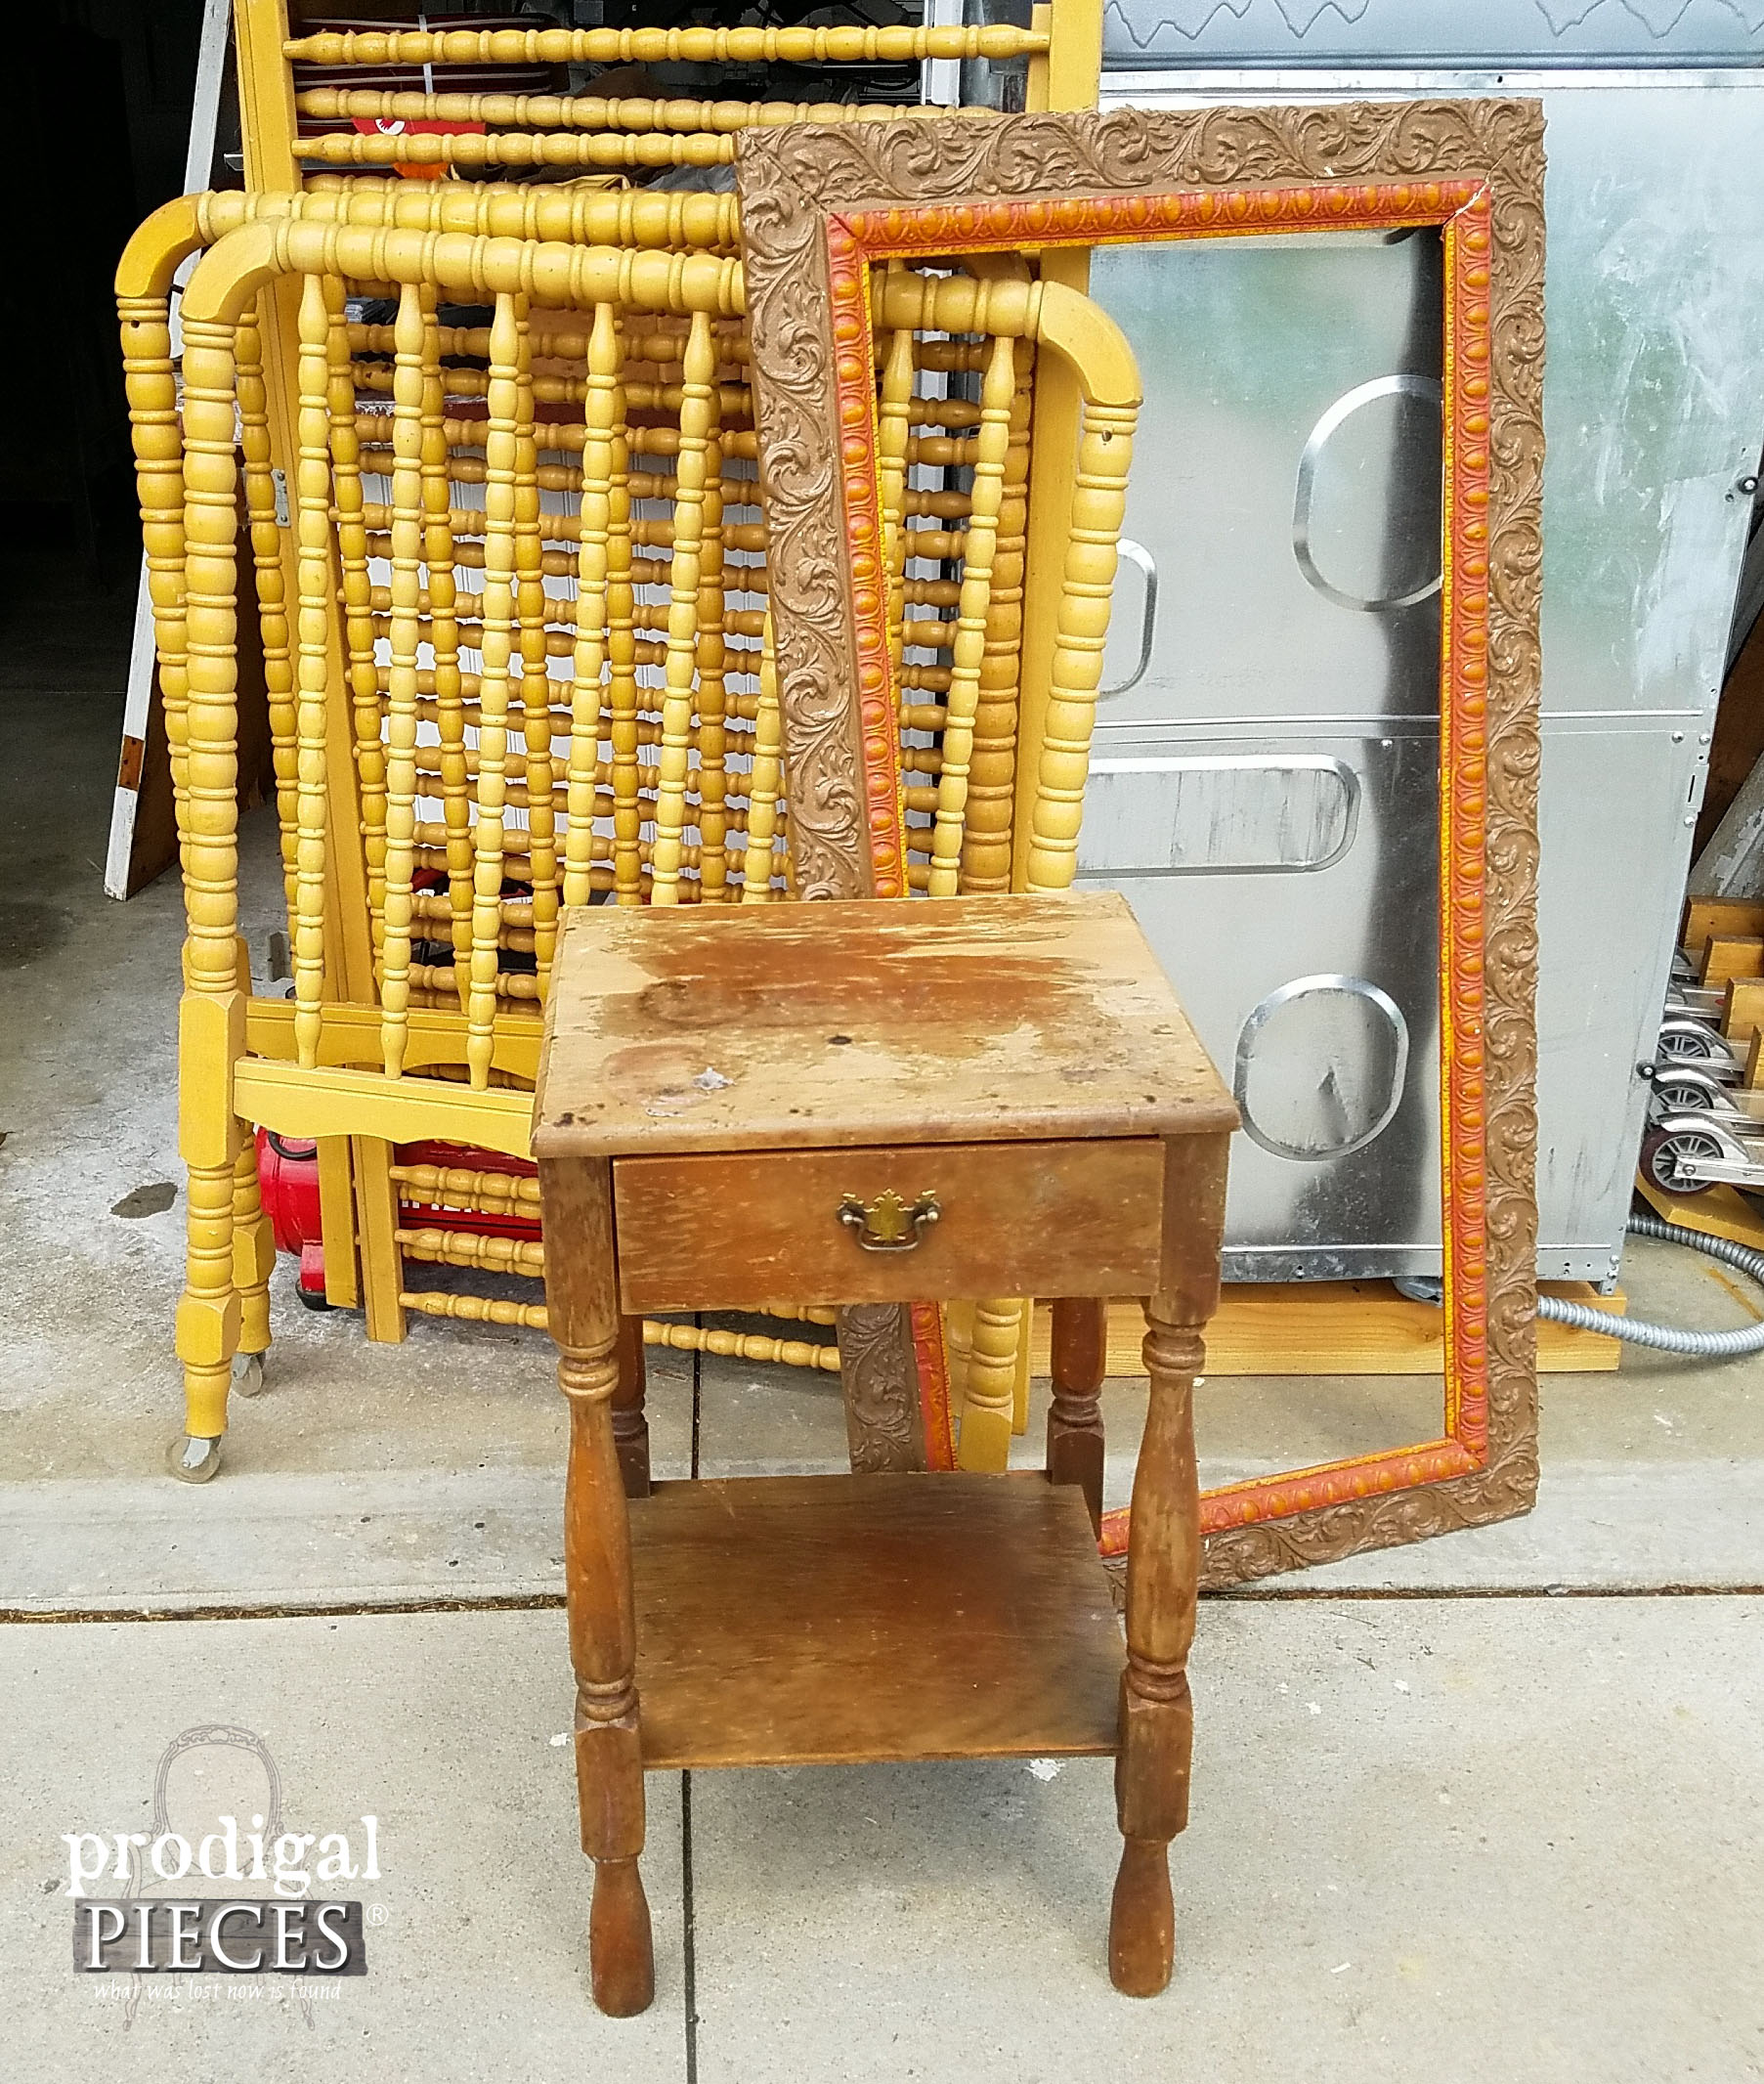 Antique Table, Ornate Frame, Jenny Lind Style Crib Trashure | Prodigal Pieces | www.prodigalpieces.com